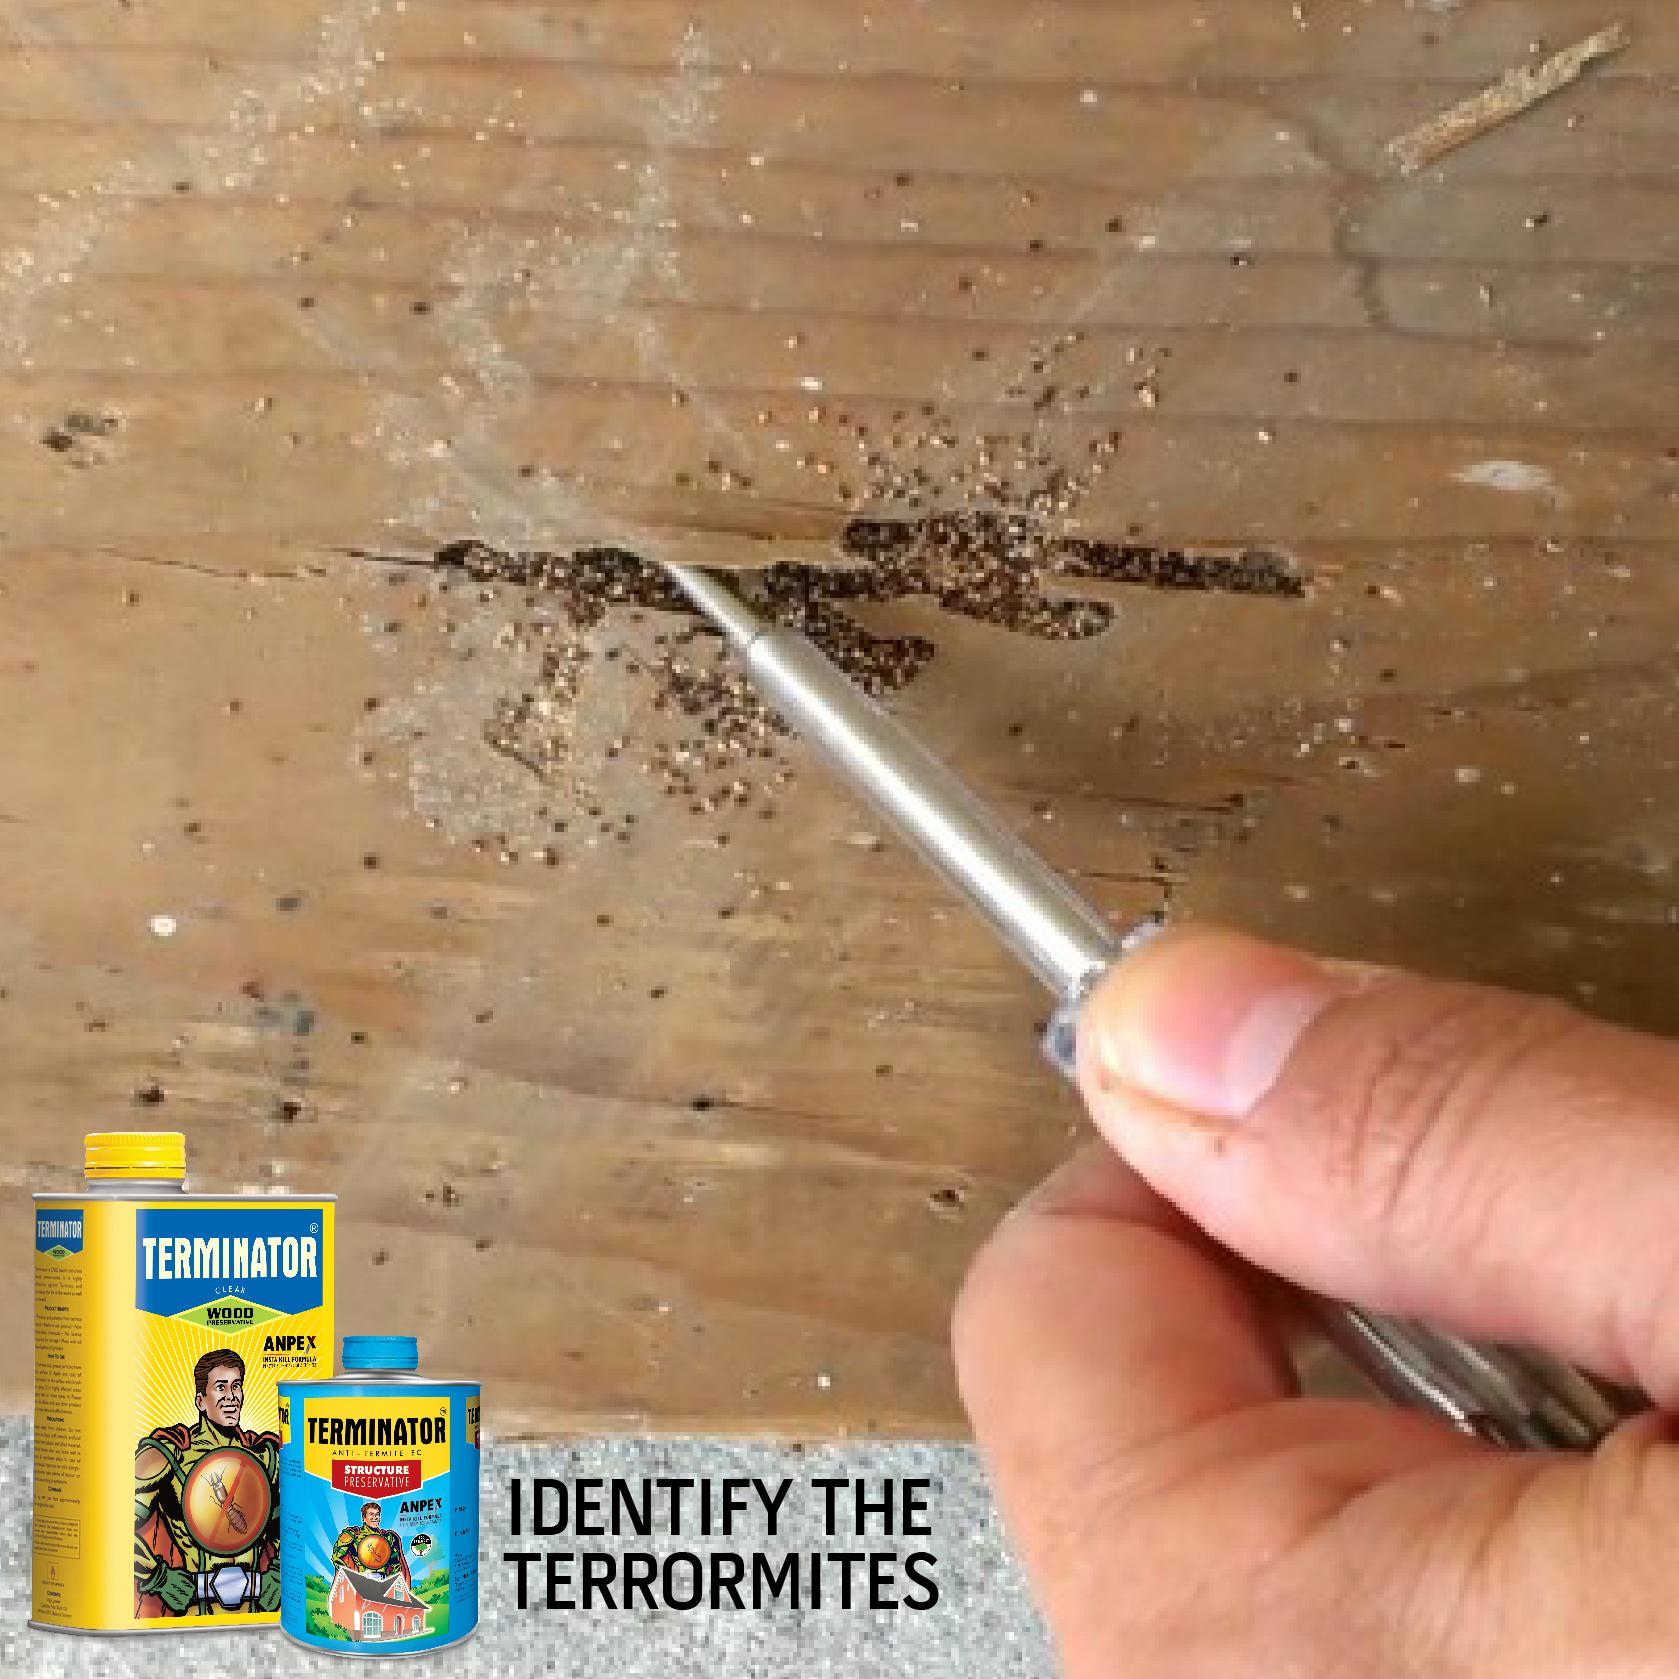 The End Of Termites On Twitter A Wood Colored Droppings From Your Furniture Known As Frass Is A Sign Termites Infestation Knowthem Http T Co Ow9qei1pan